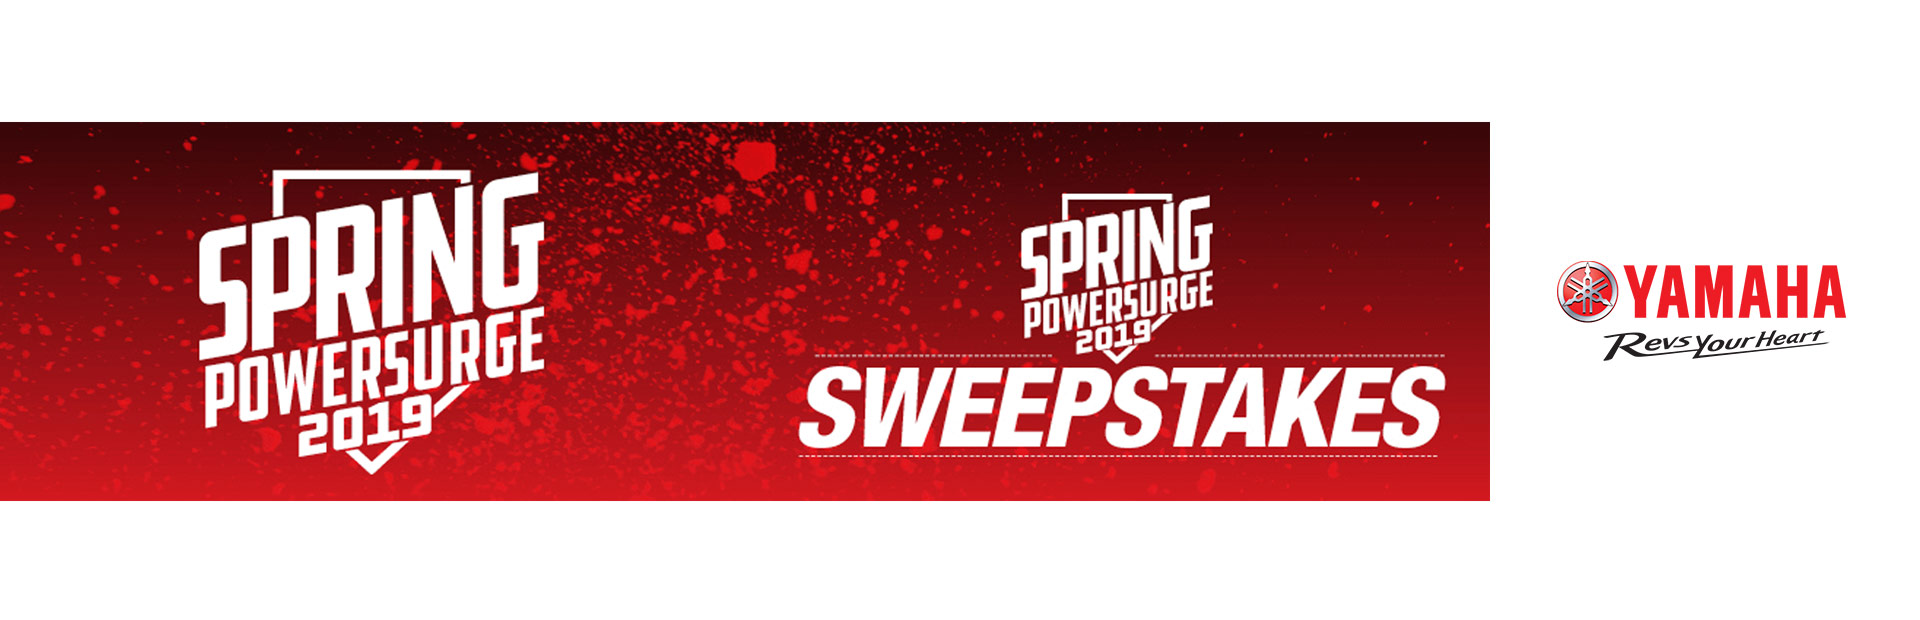 Spring Power Surge Sweepstakes